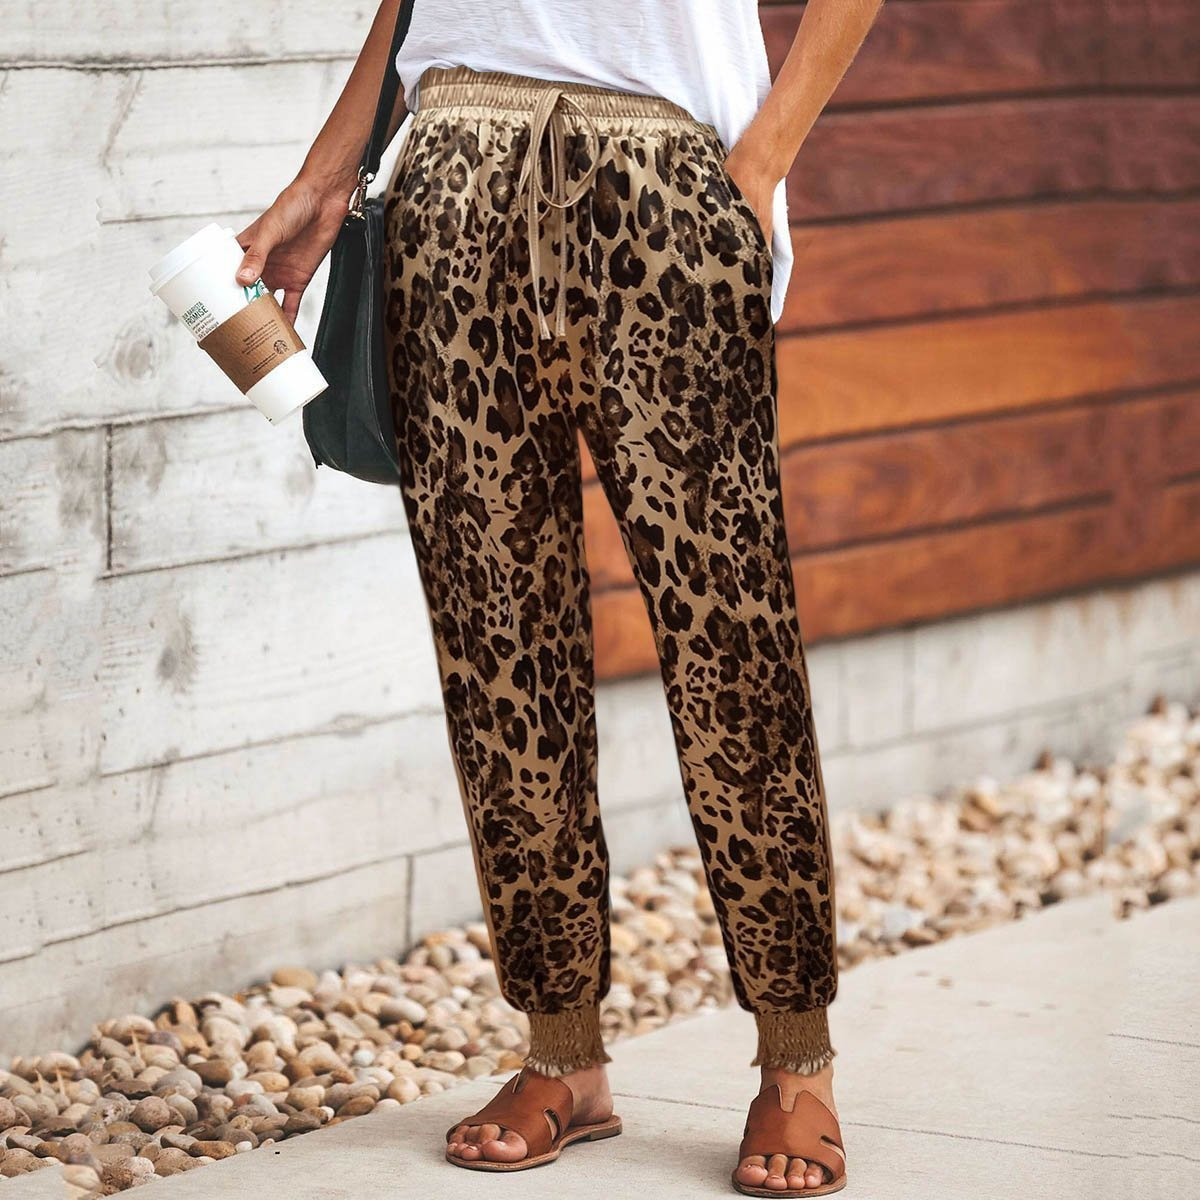 Casual Leopard Print Elastic Drawstring Waist Sport Pants Same As Photo / S